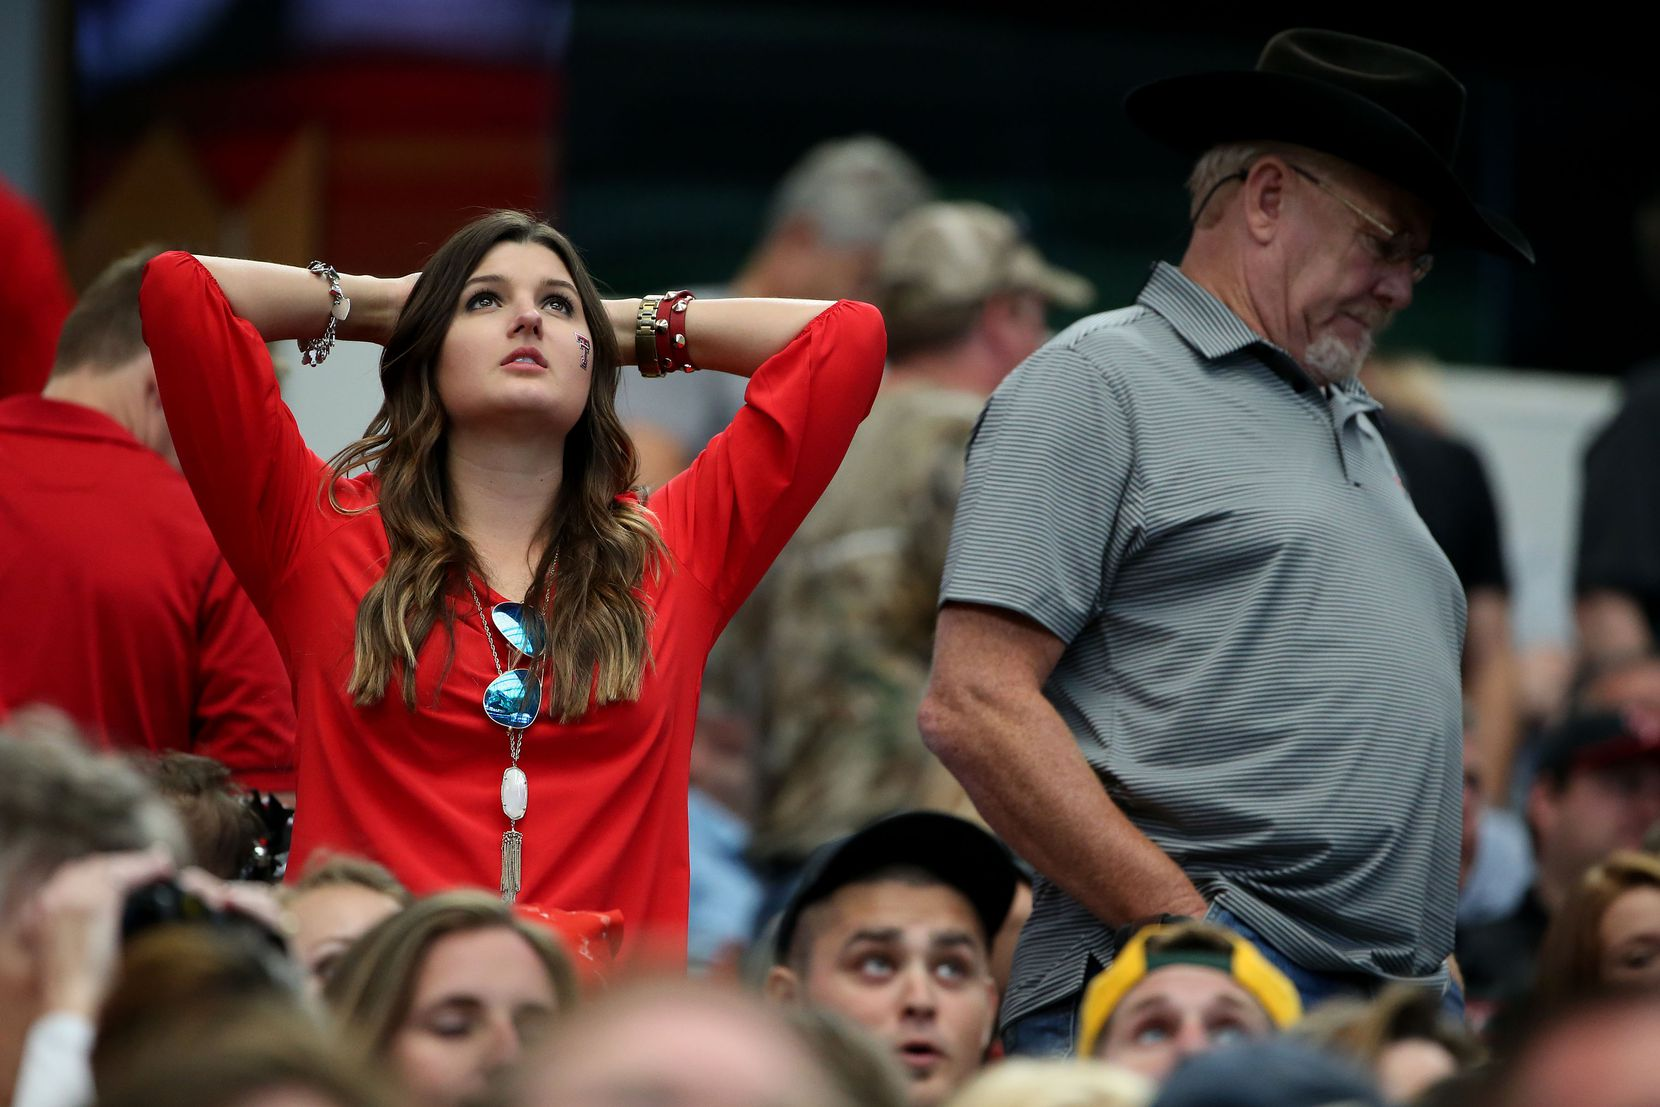 A Texas Tech Red Raiders fan reacts to a fumble call in the first half during an NCAA football game between Texas Tech and Baylor at AT&T Stadium in Arlington, Texas Saturday October 3, 2015. (Andy Jacobsohn/The Dallas Morning News)